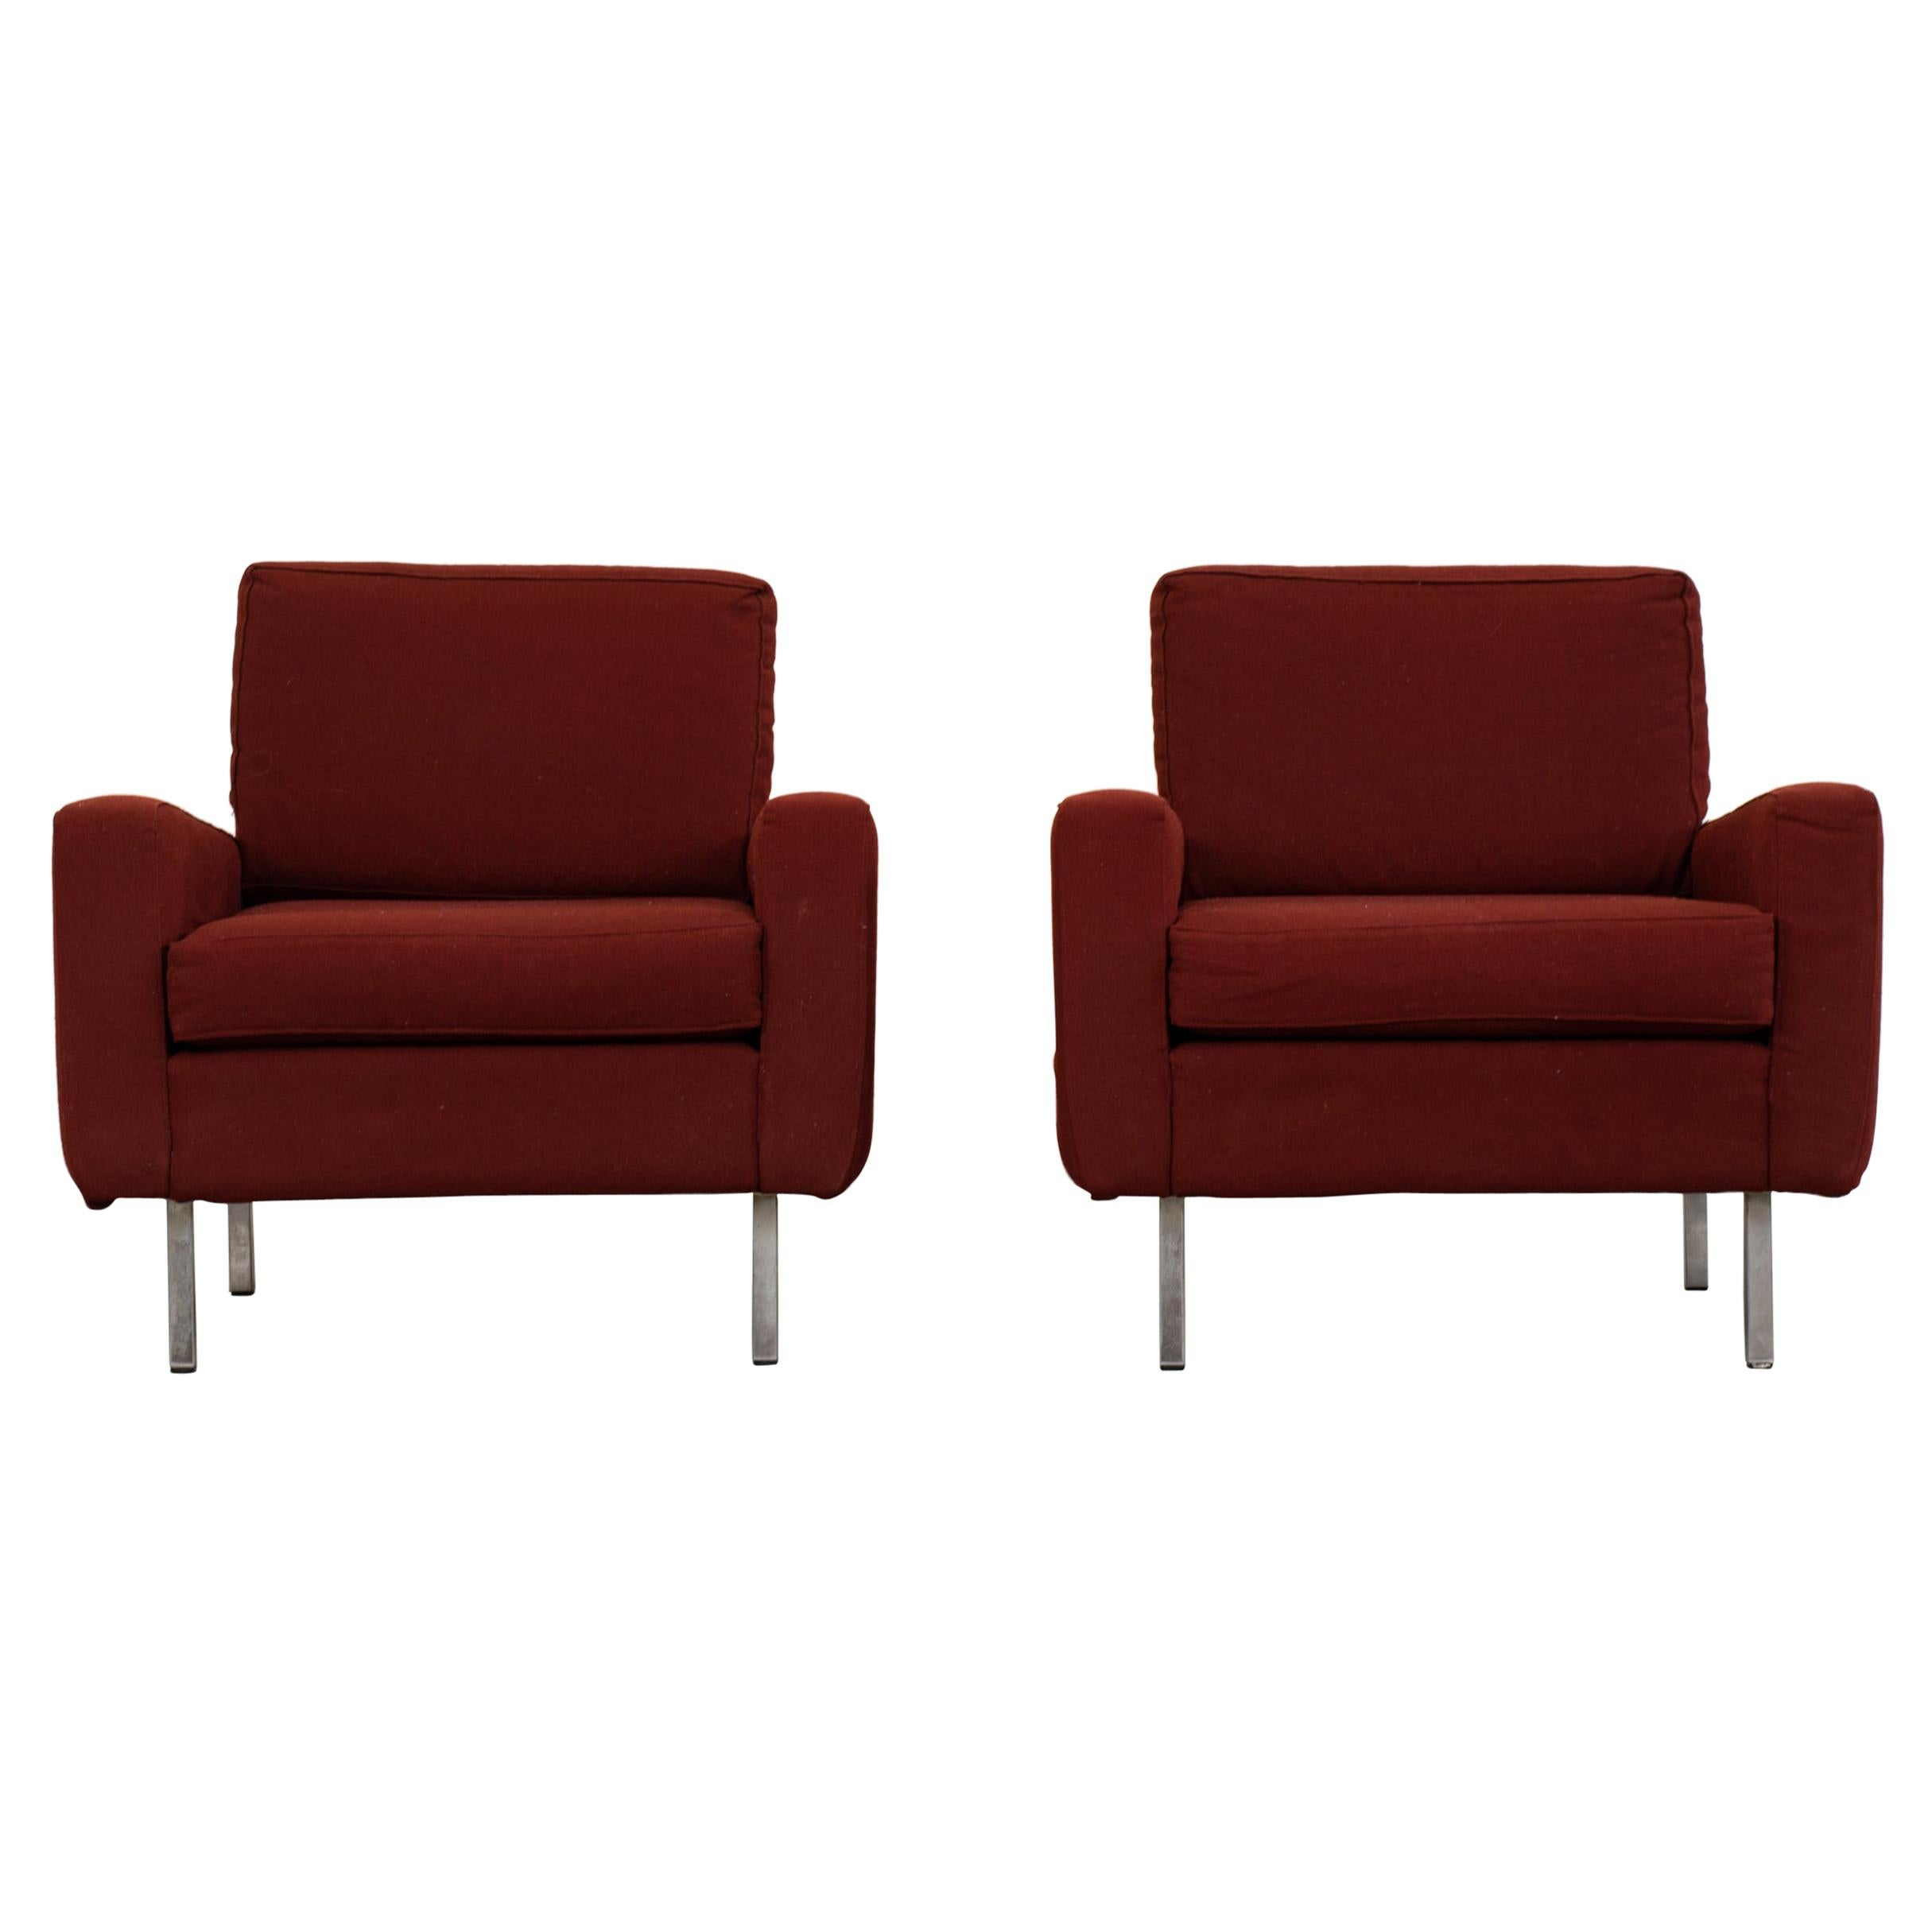 George Nelson Set of Two Armchairs in Red Fabric for Herman Miller